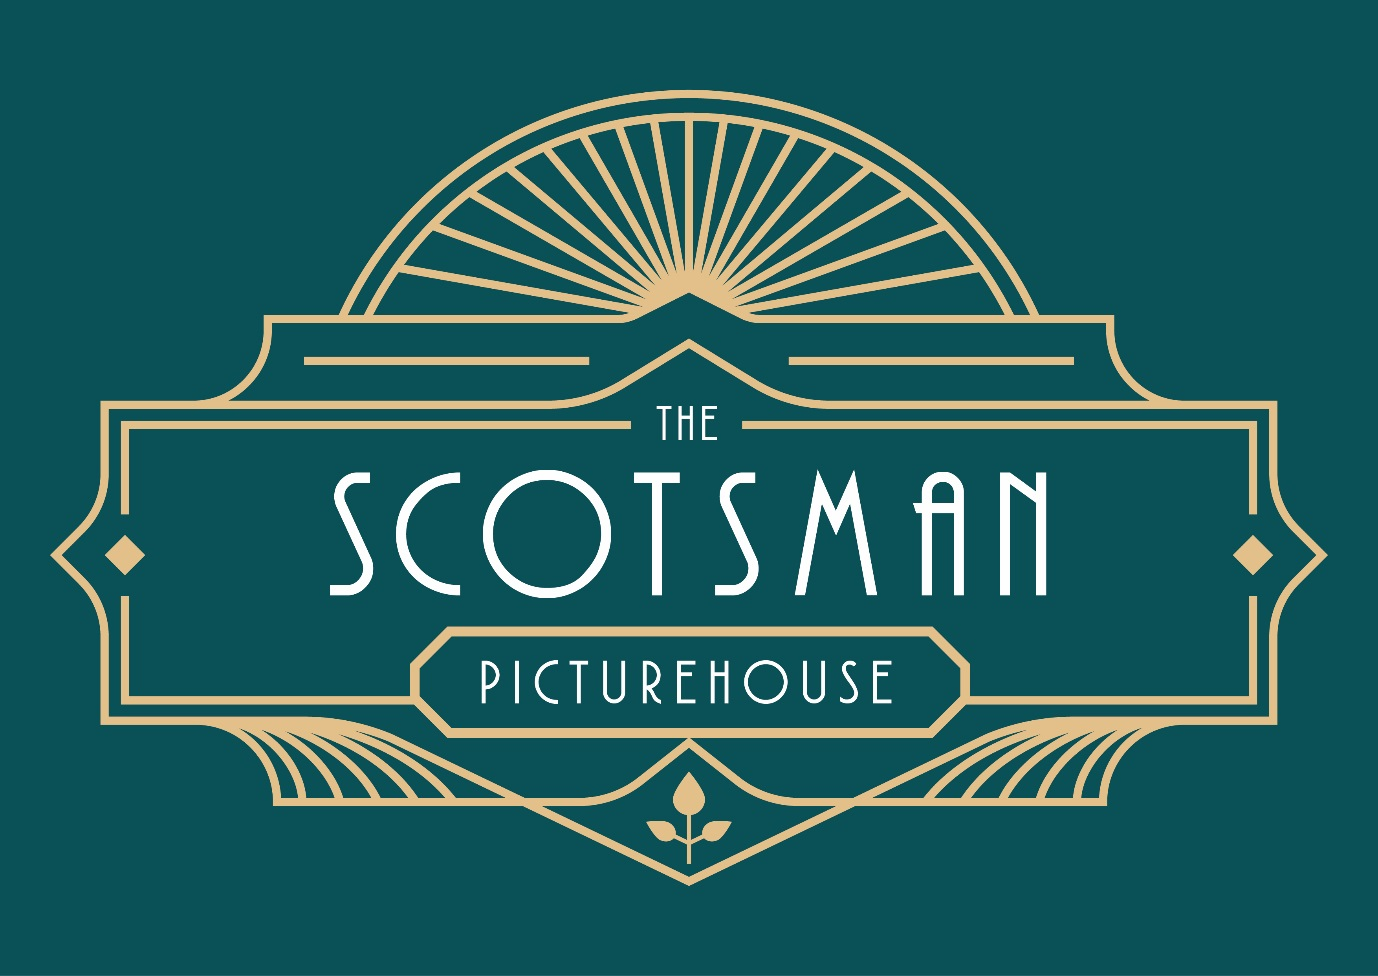 Bar Staff - The Scotsman Picturehouse